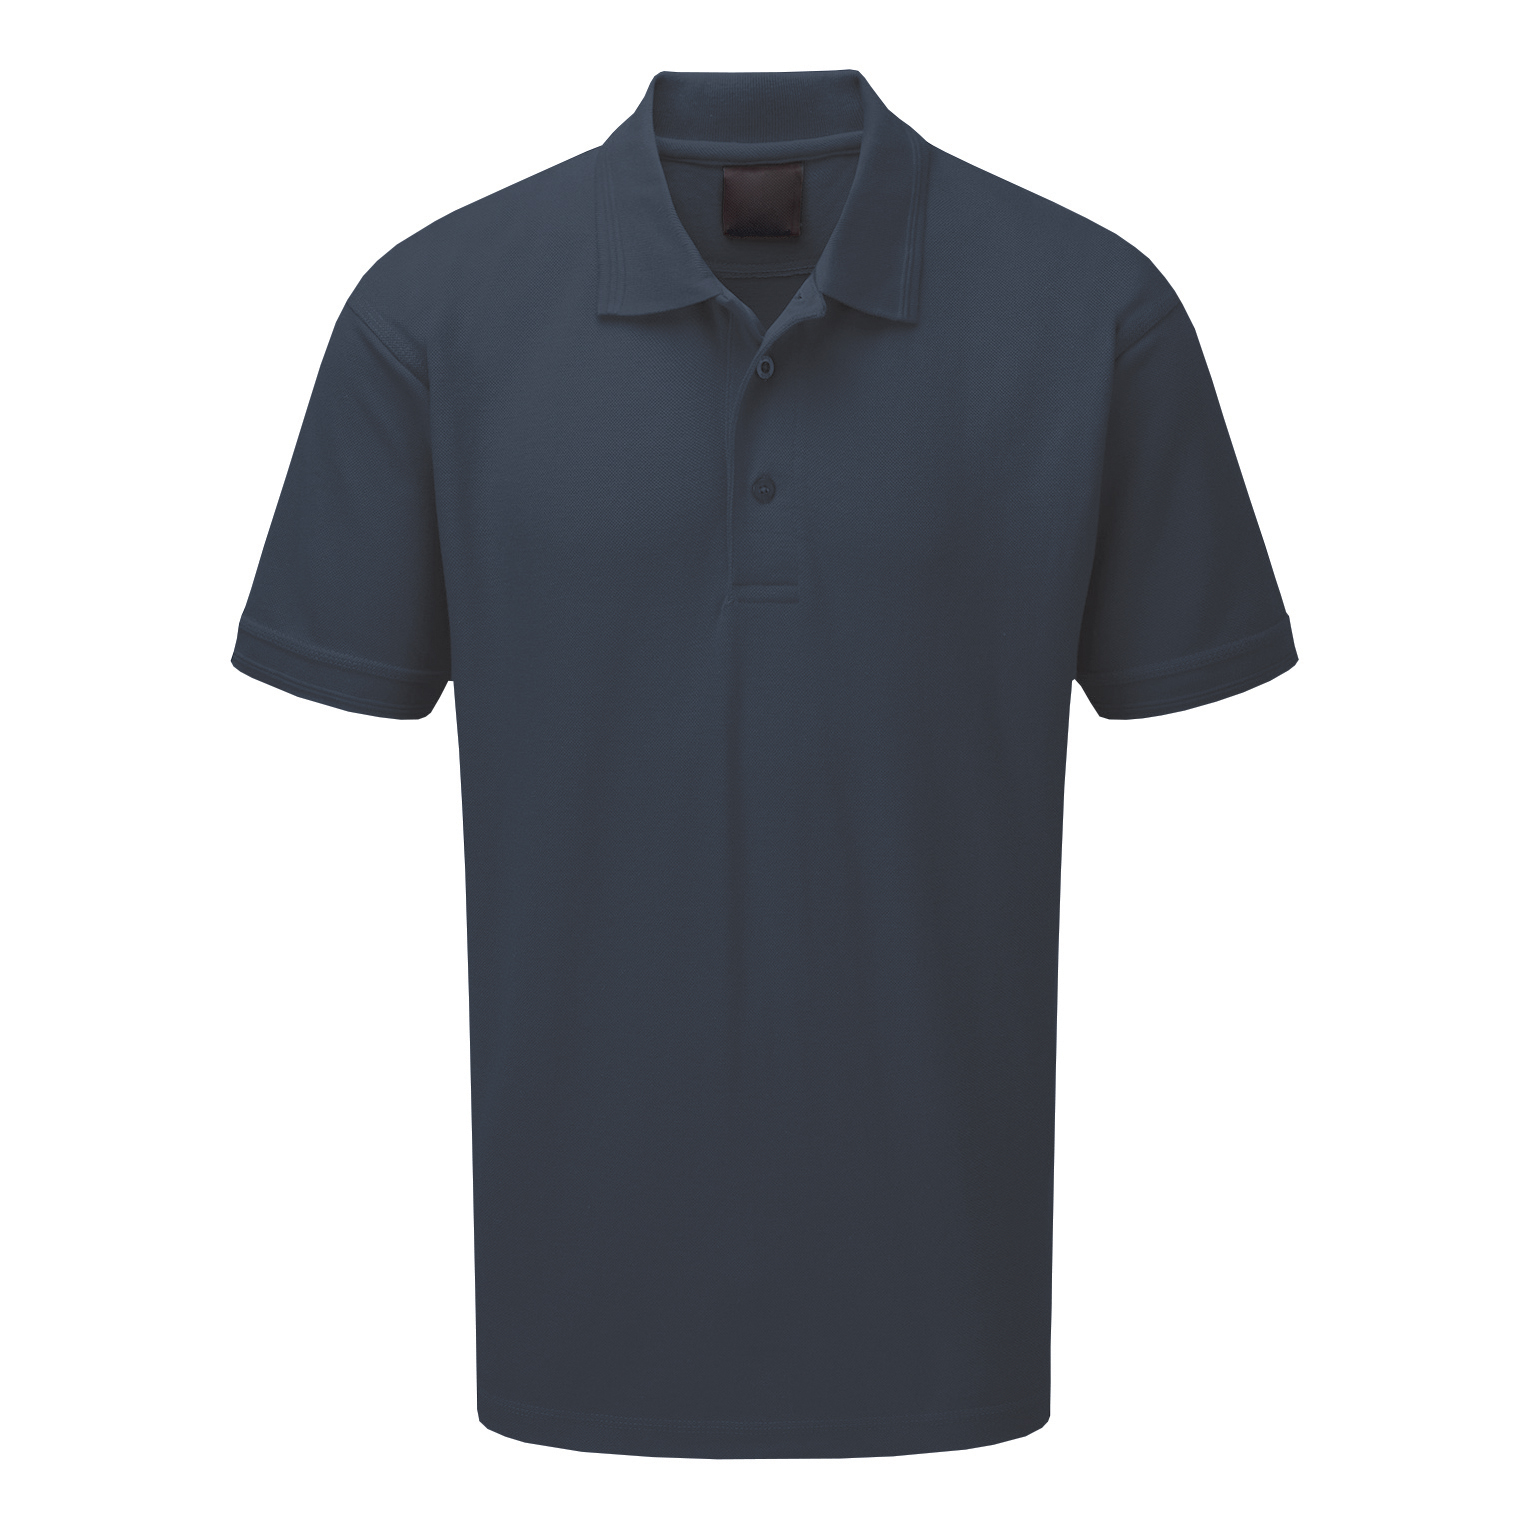 Business Polo Premium Triple Stitched Size Large Graphite